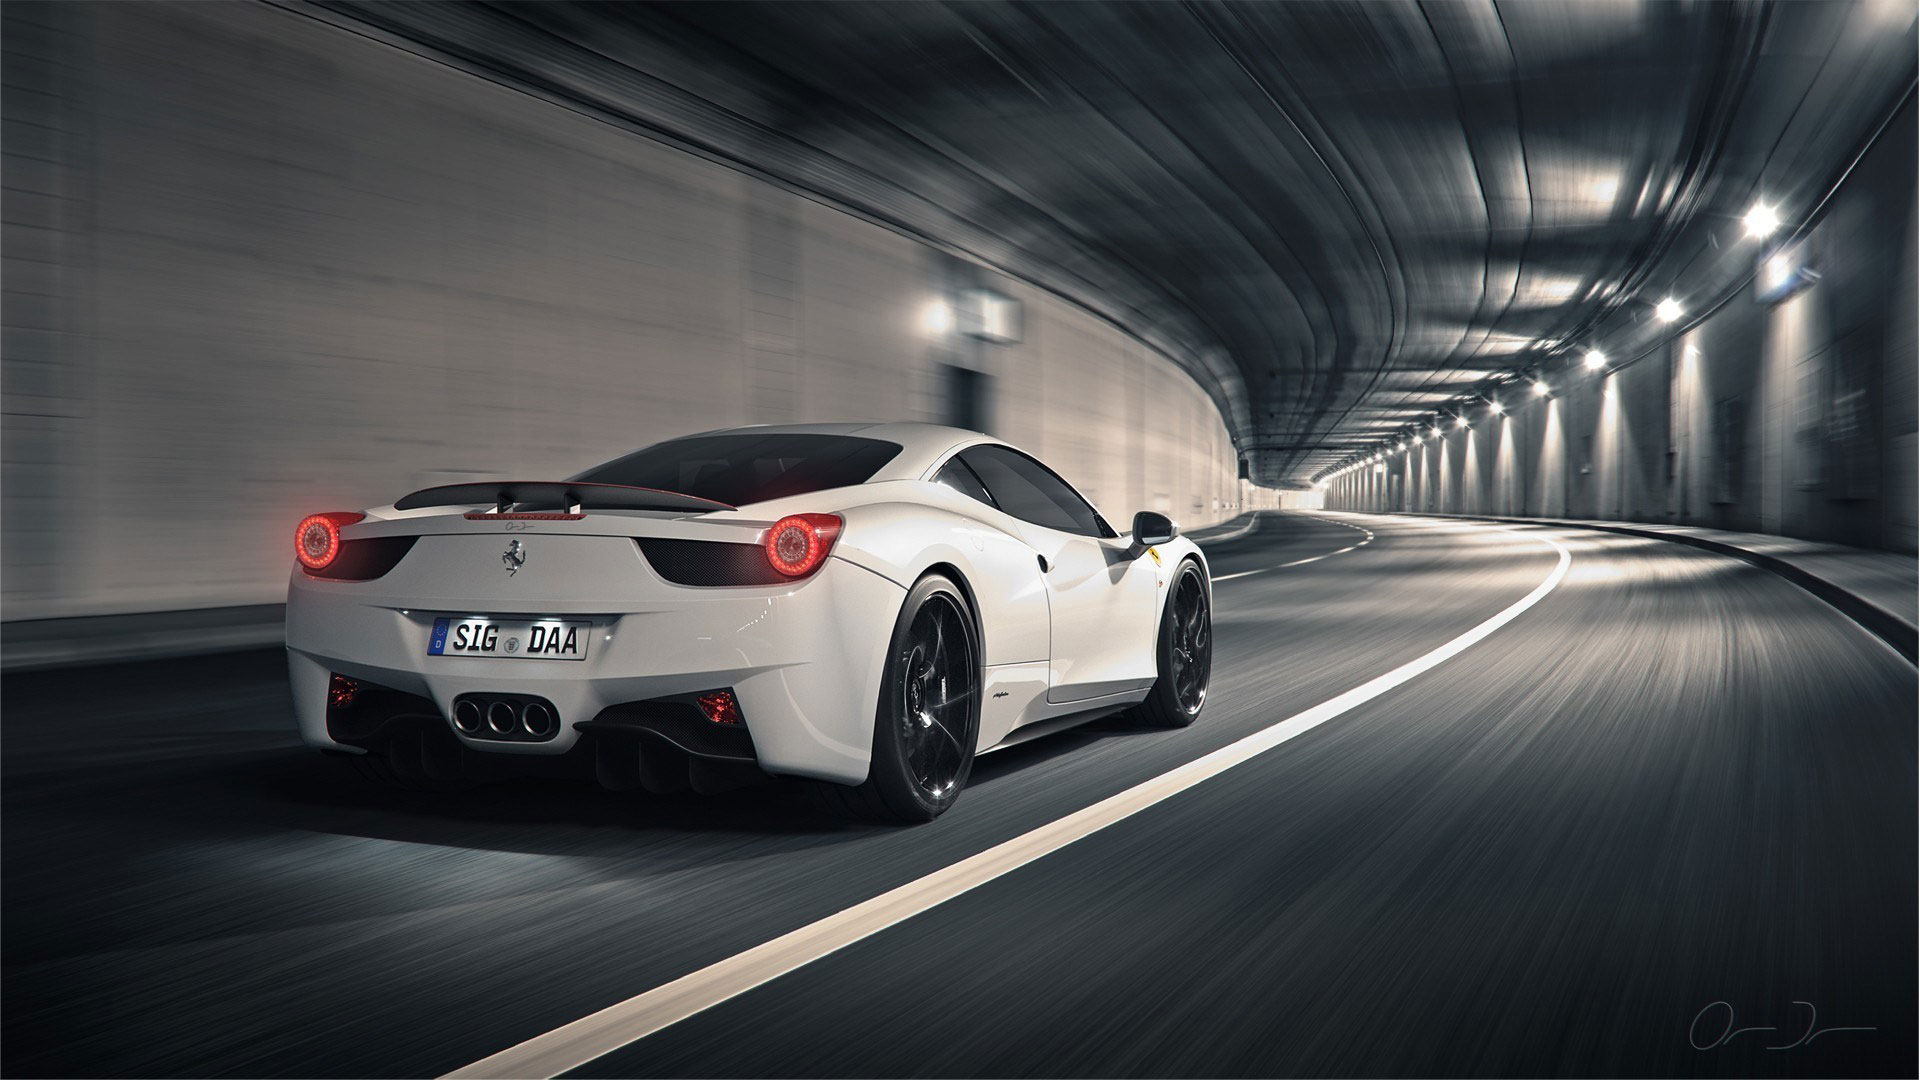 ... Ferrari 458 Spider Wallpapers | Hd Wallpapers ...